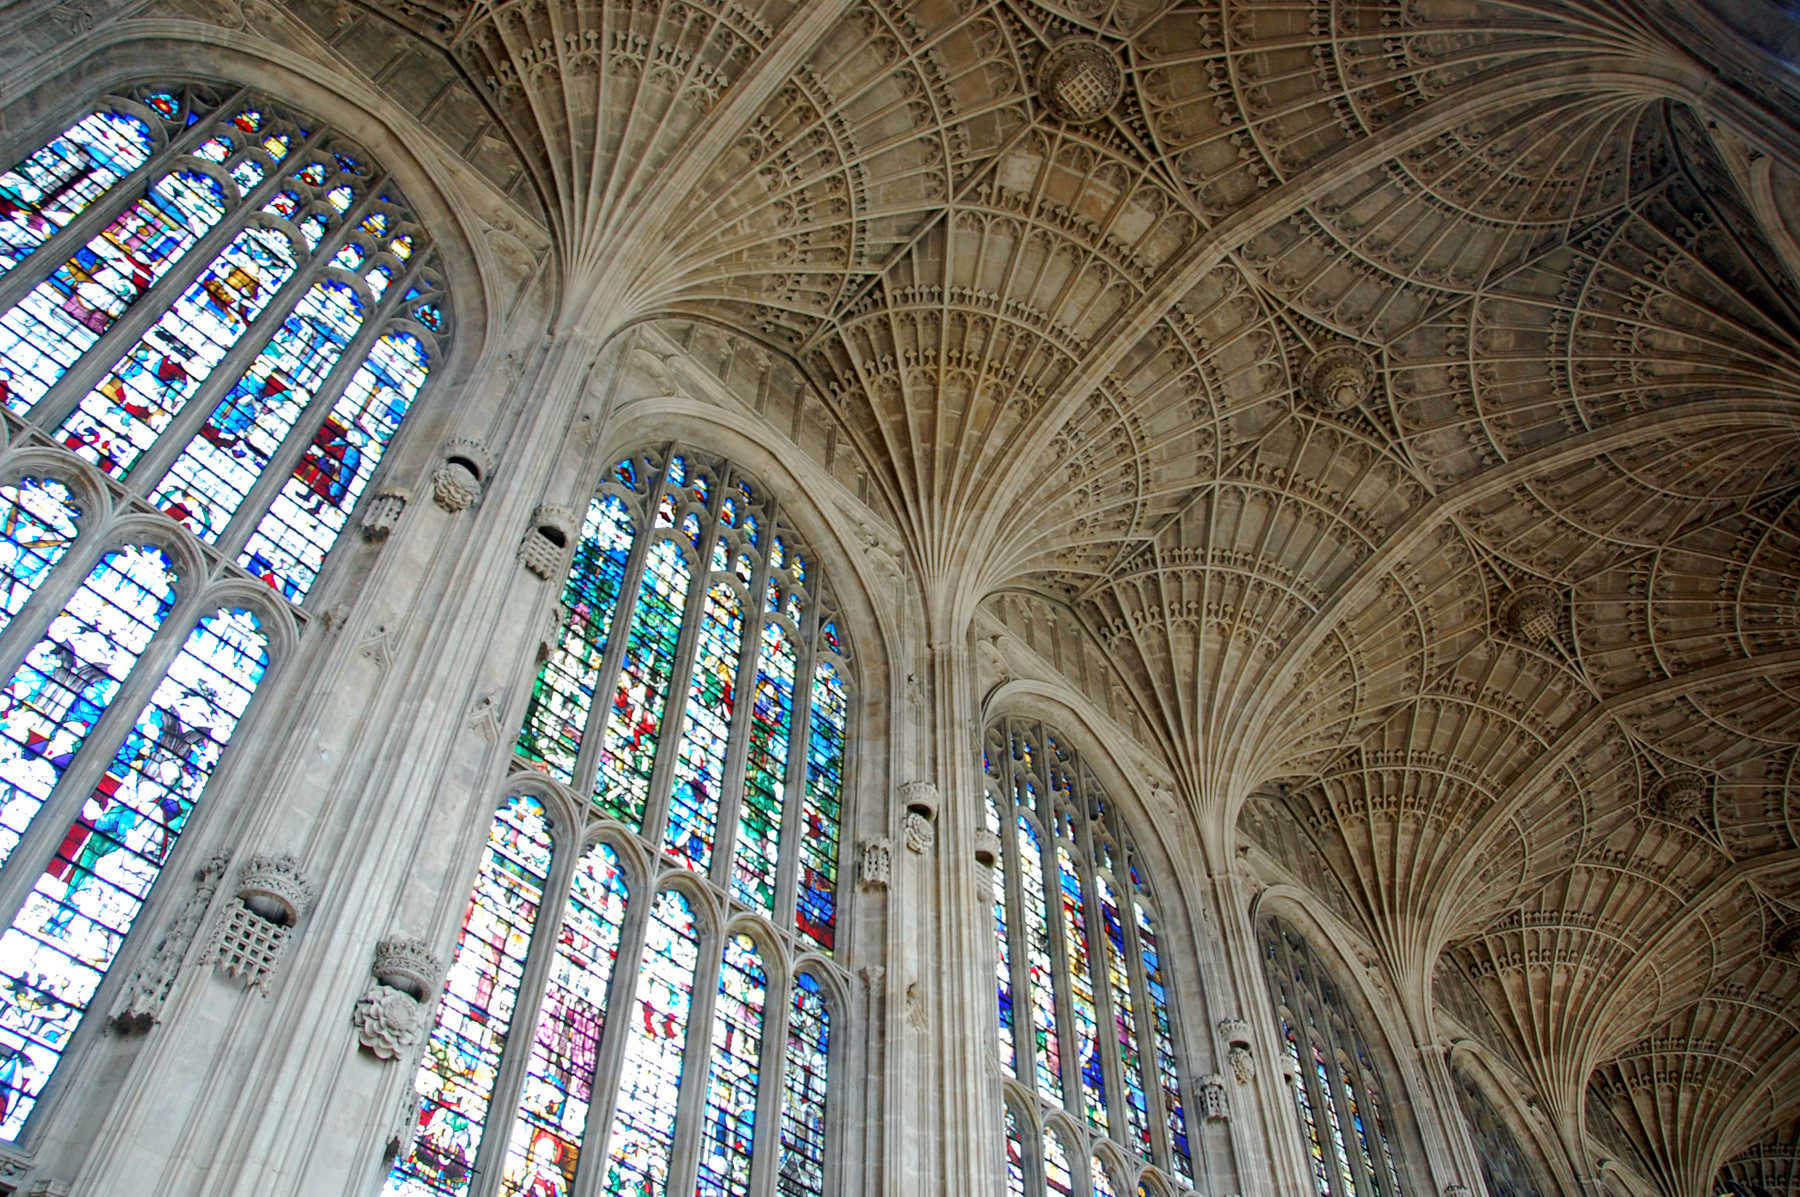 Ceiling of King's College Chapel, Cambridge, England